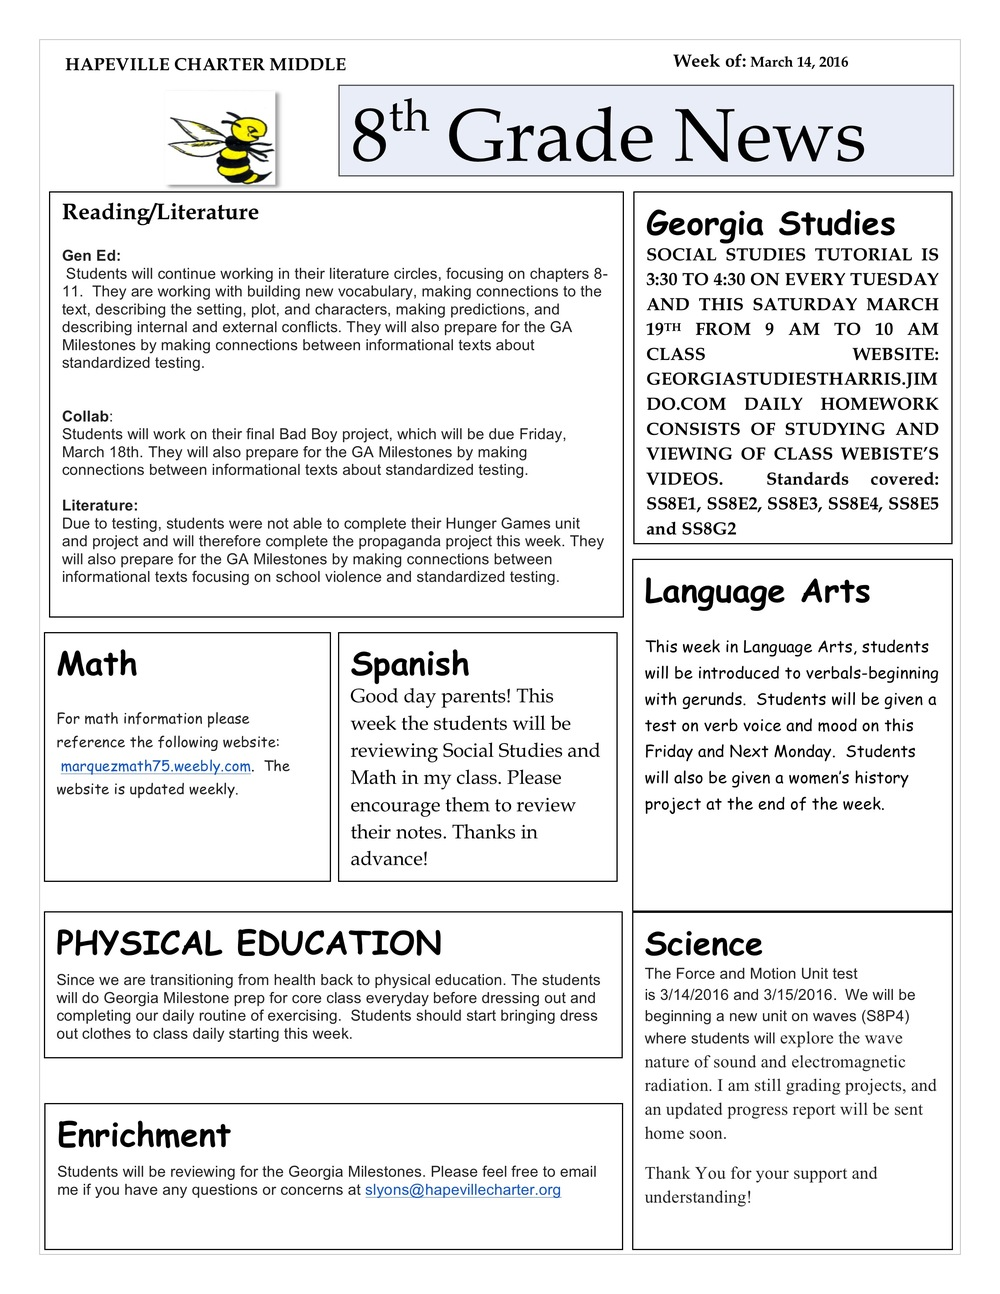 Newsletter Image8th grade 3-14.jpeg